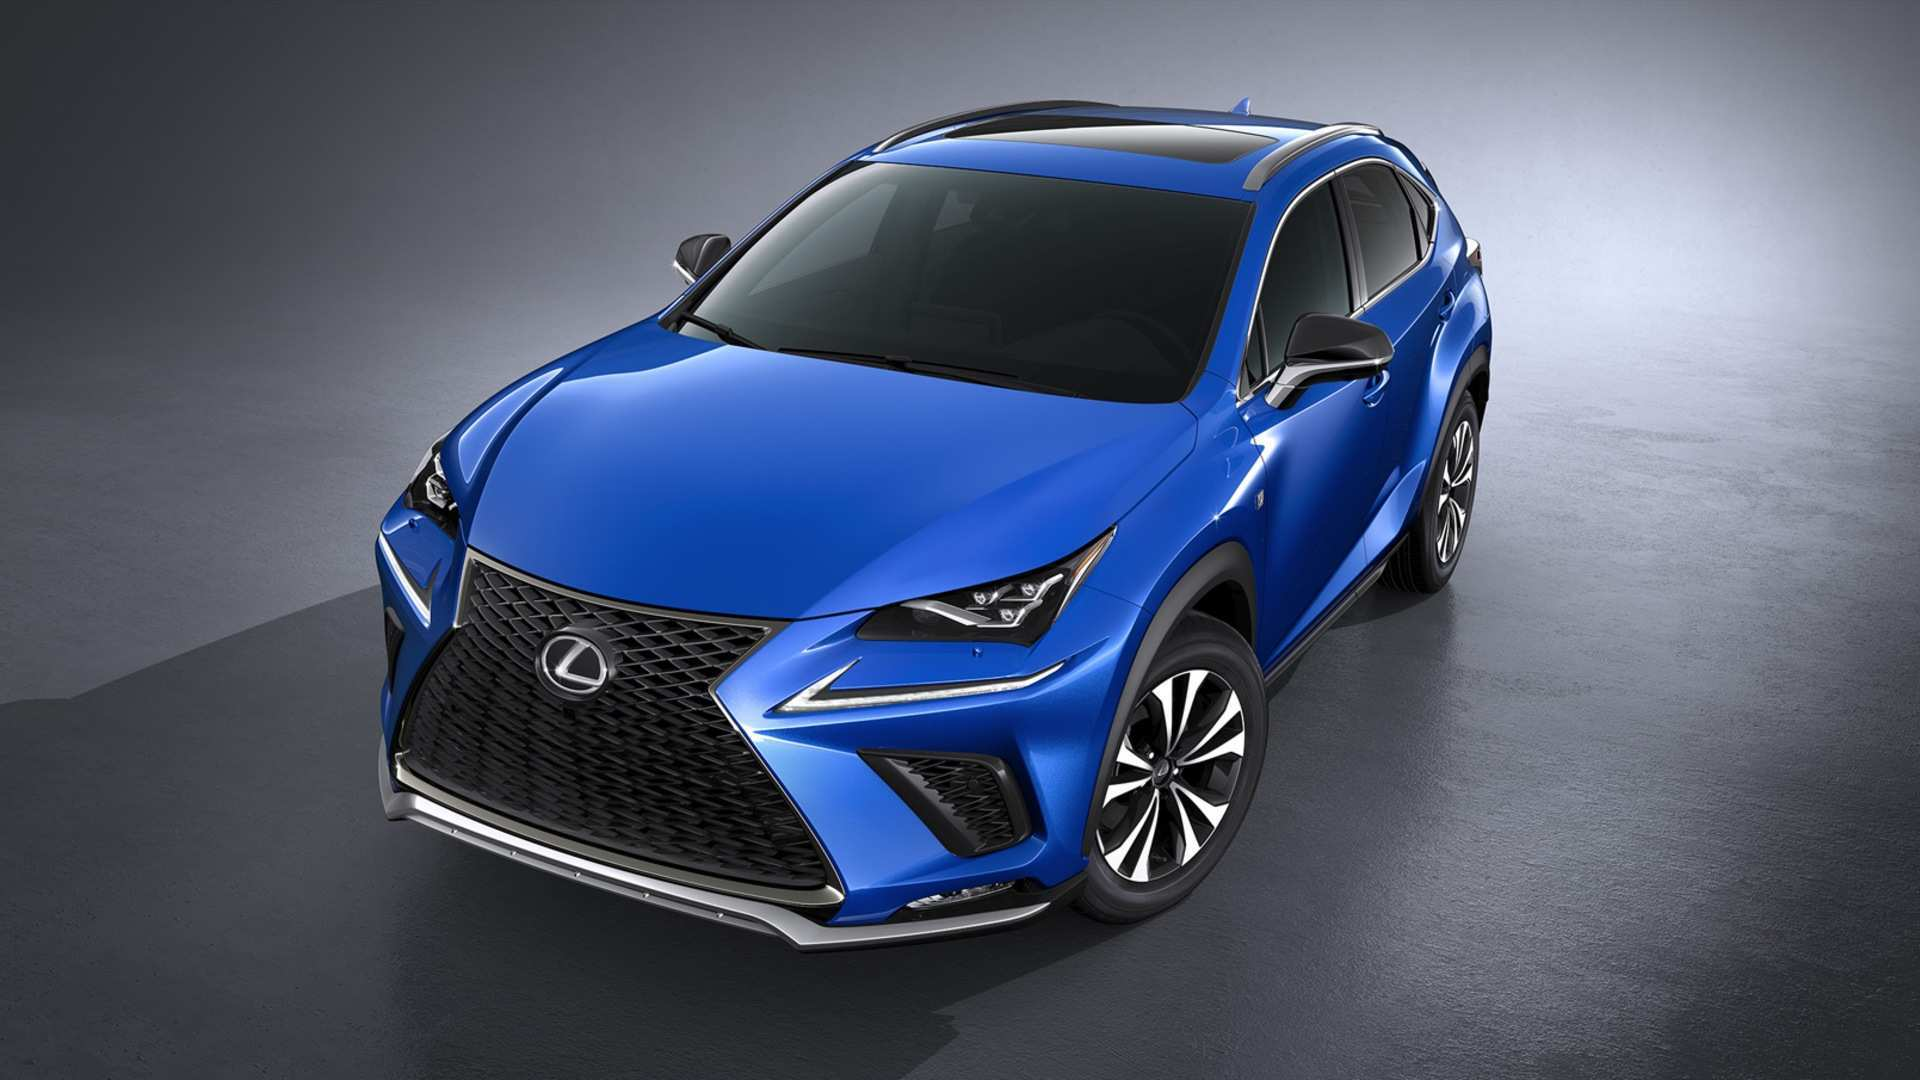 27 The Best 2020 Lexus NX 200t Price